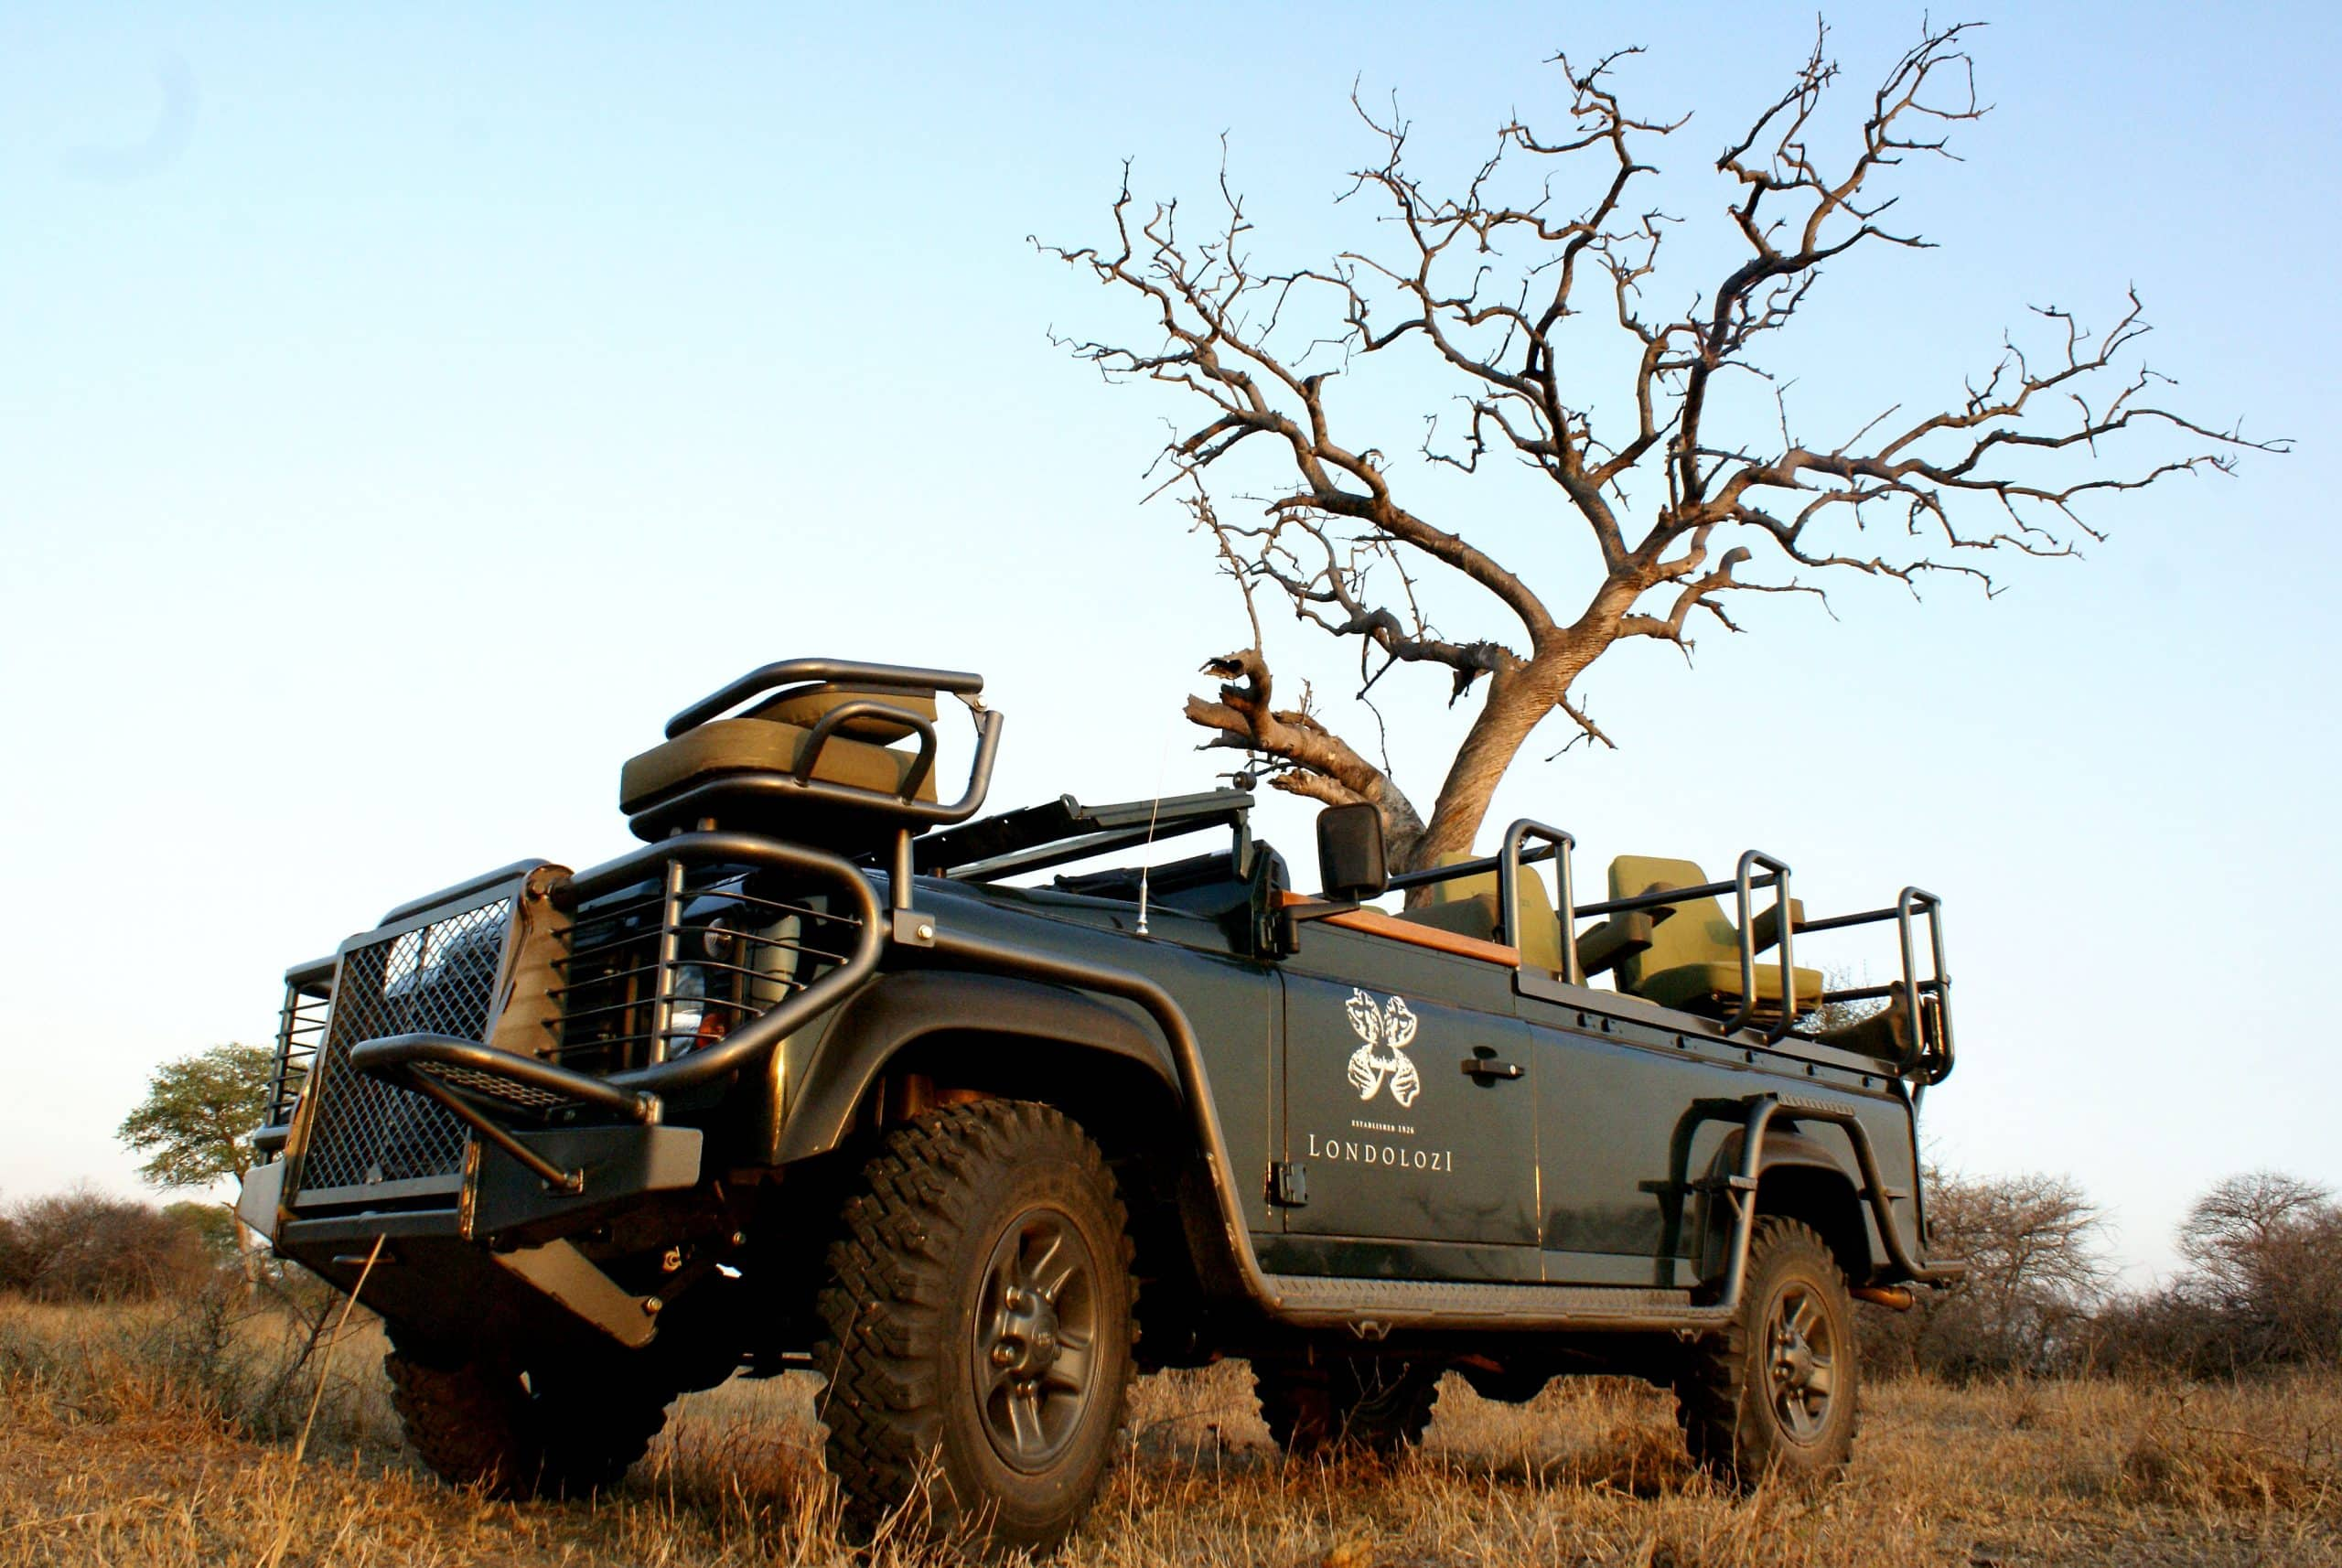 Londolozi specialised photographic vehicle